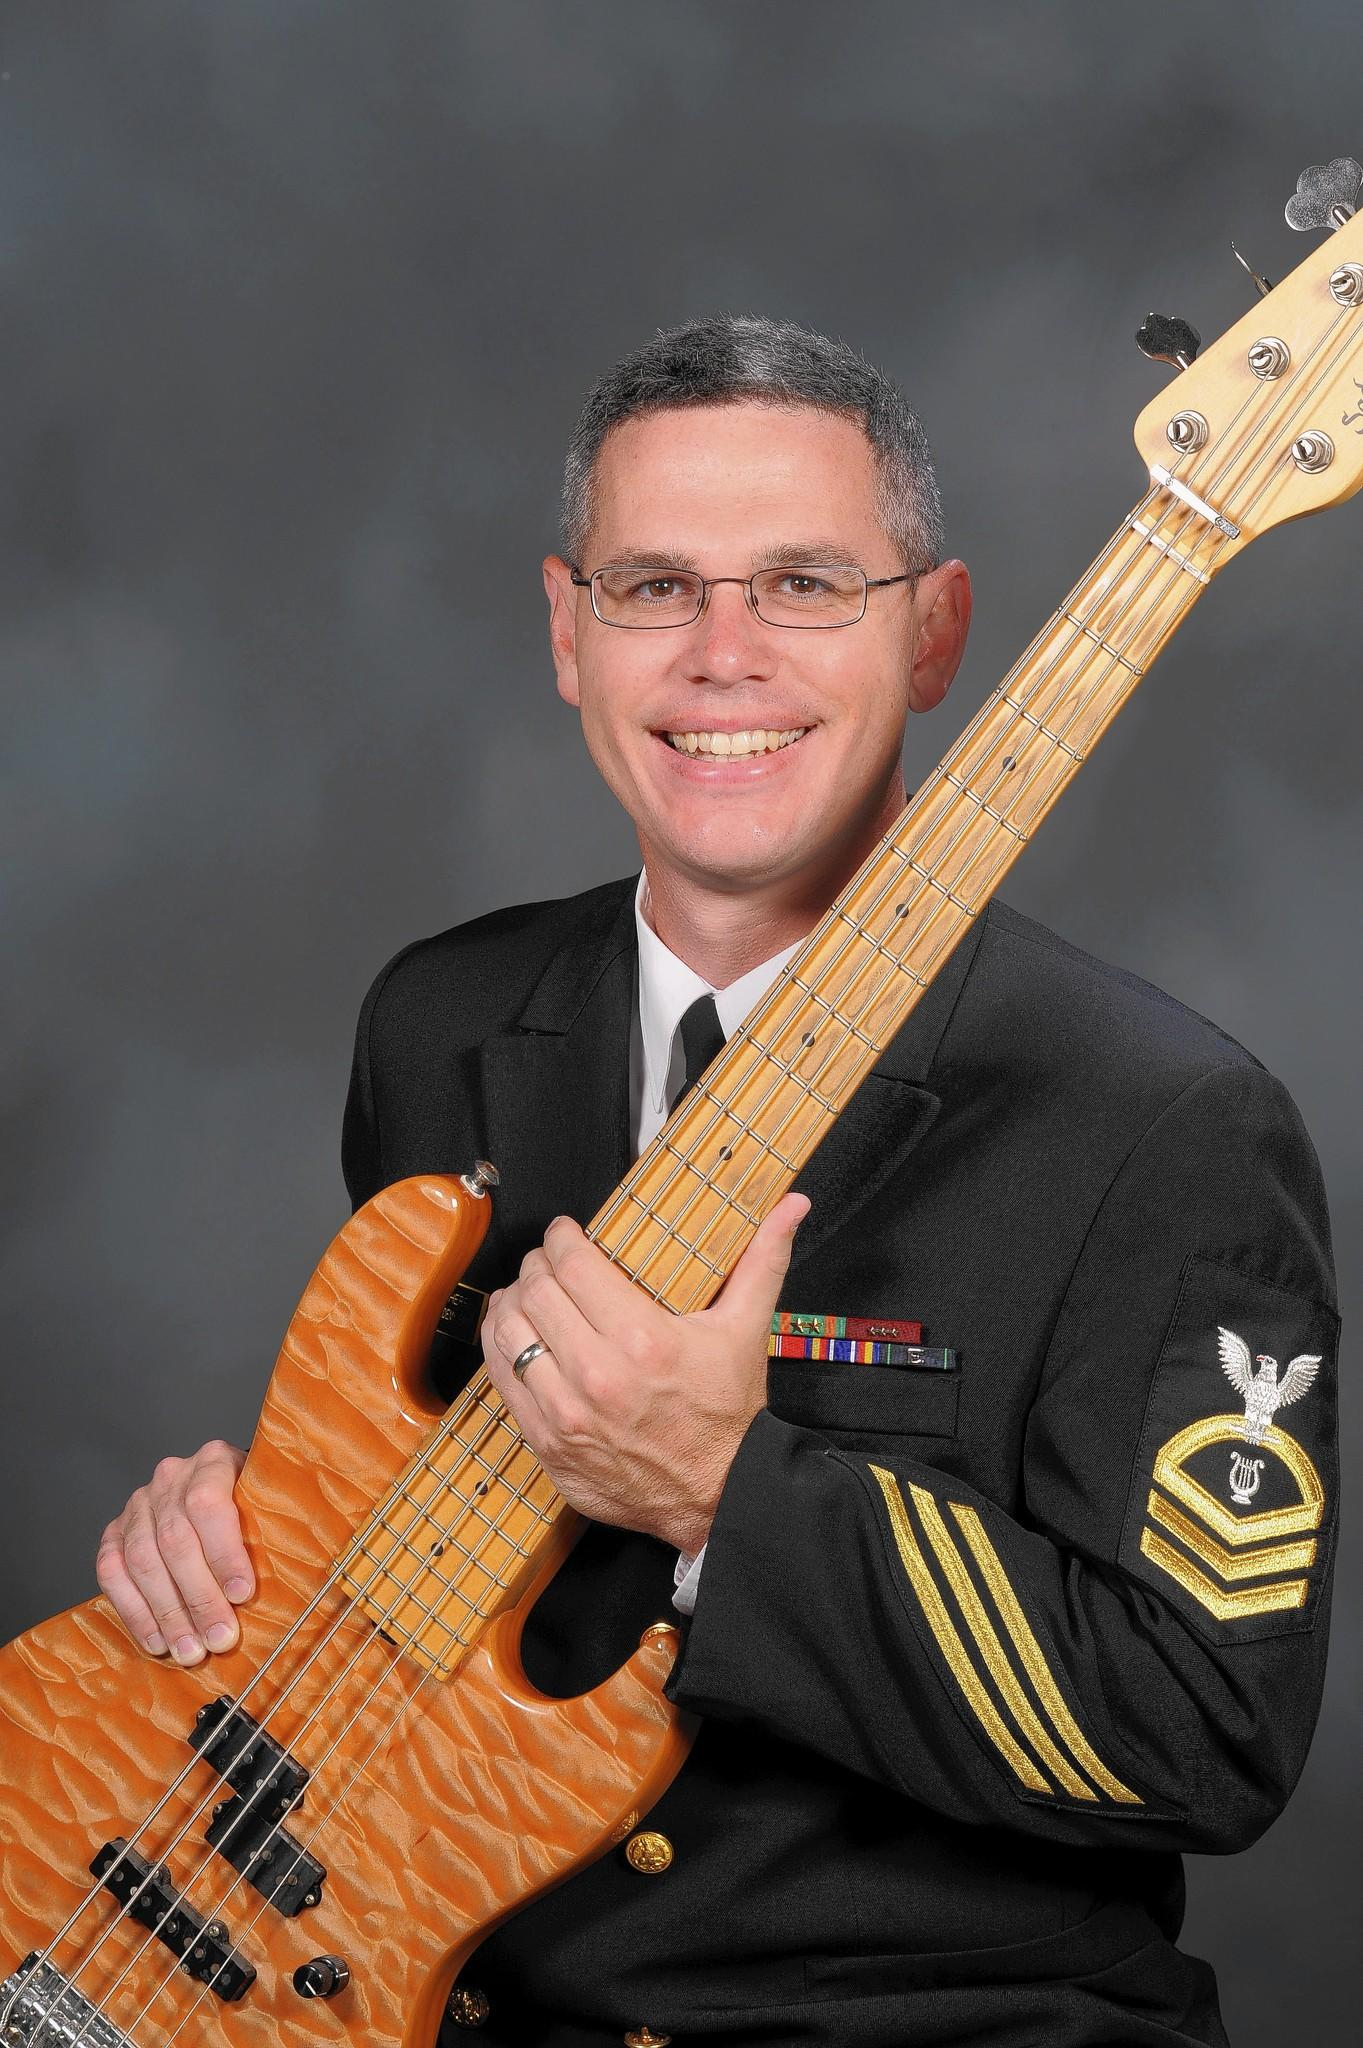 Rory Cherry, chief musician and electric bassist for the Electric Brigade, the U.S. Naval Academy Band.